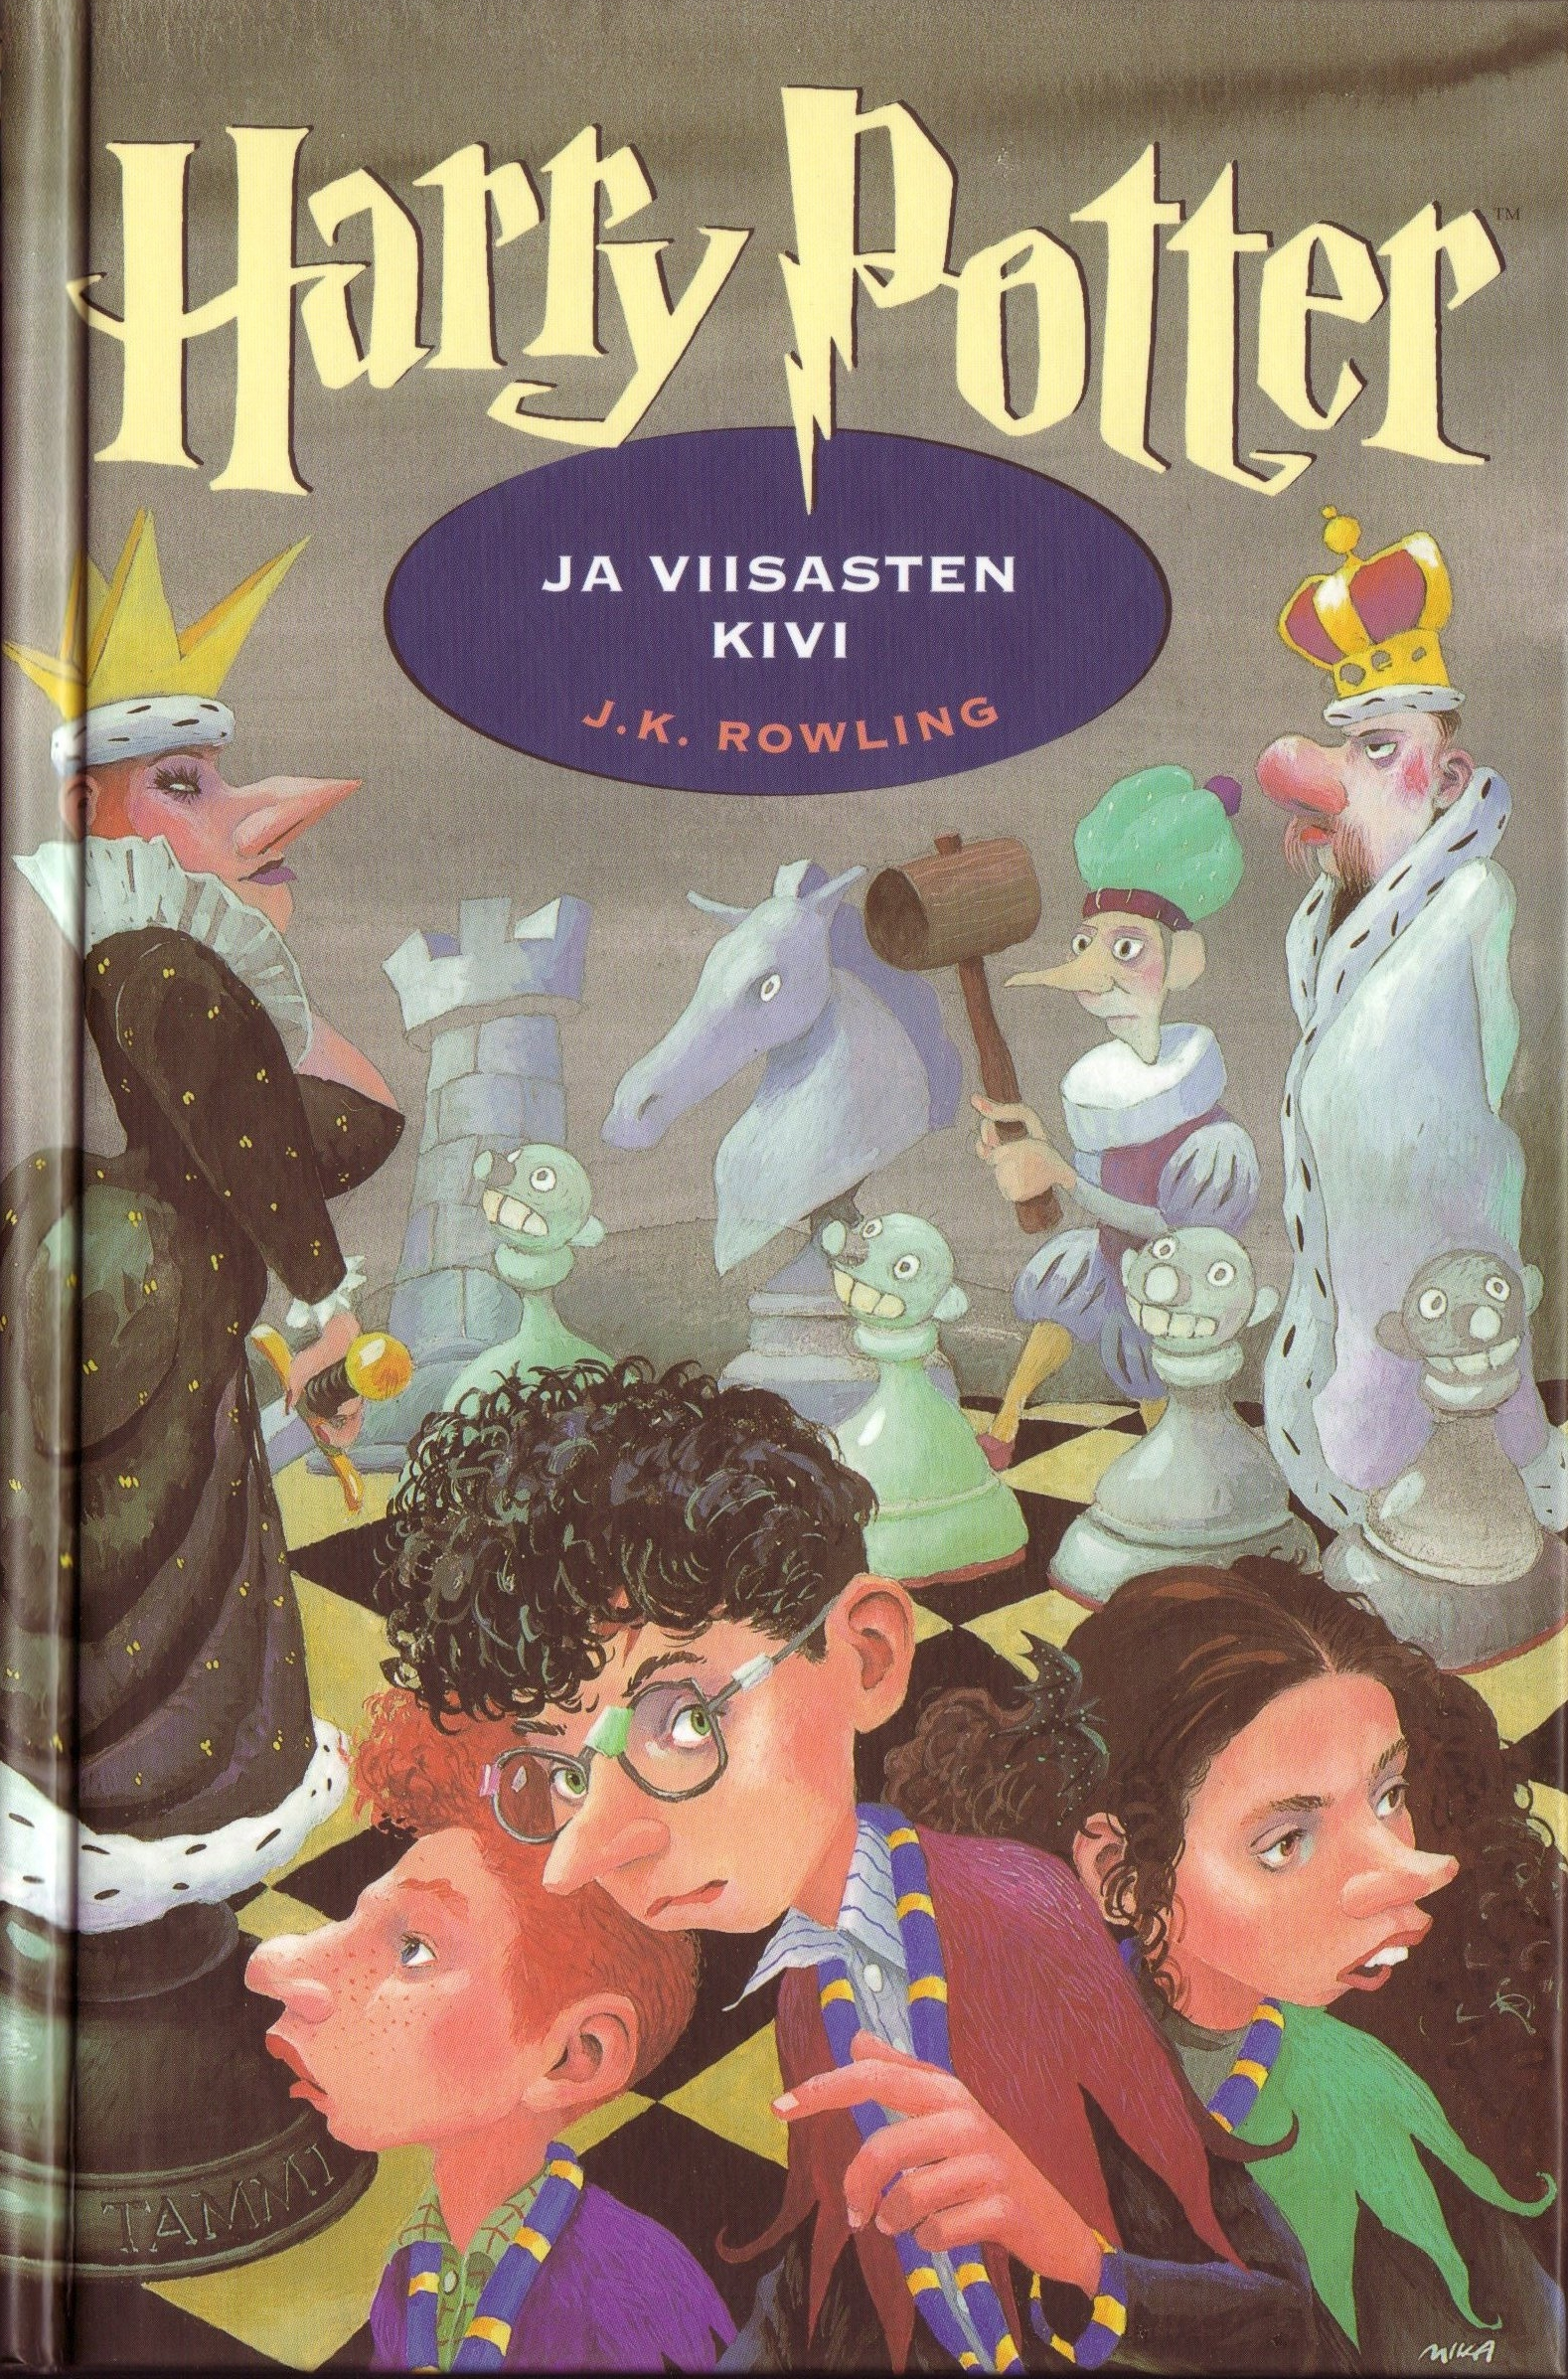 Harry Potter Book Wiki : Image finnish book cover g harry potter wiki